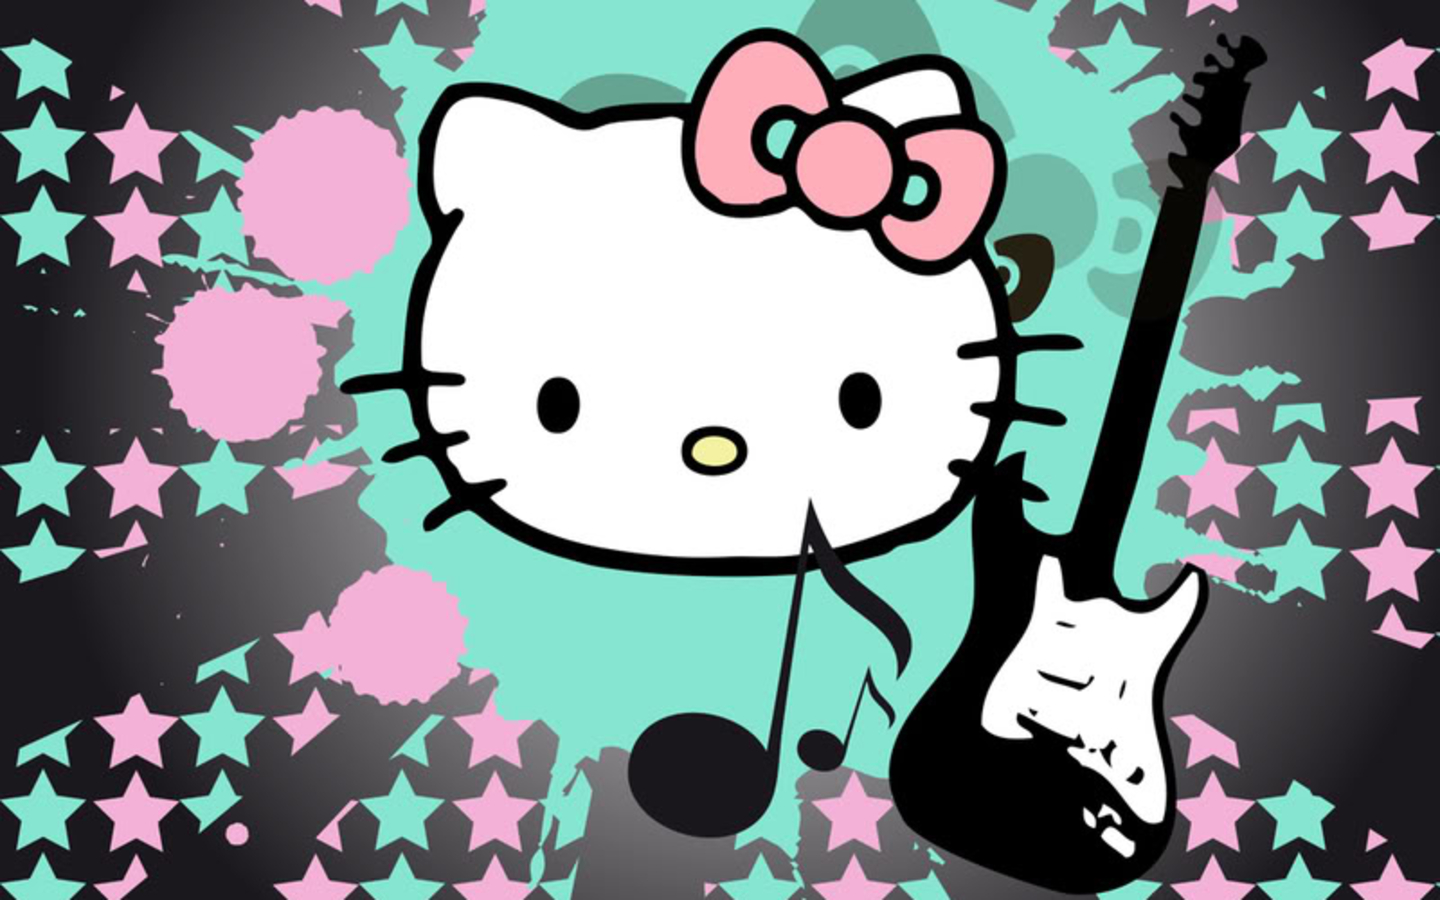 Hello Kitty Wallpaper ImageBankbiz 1440x900